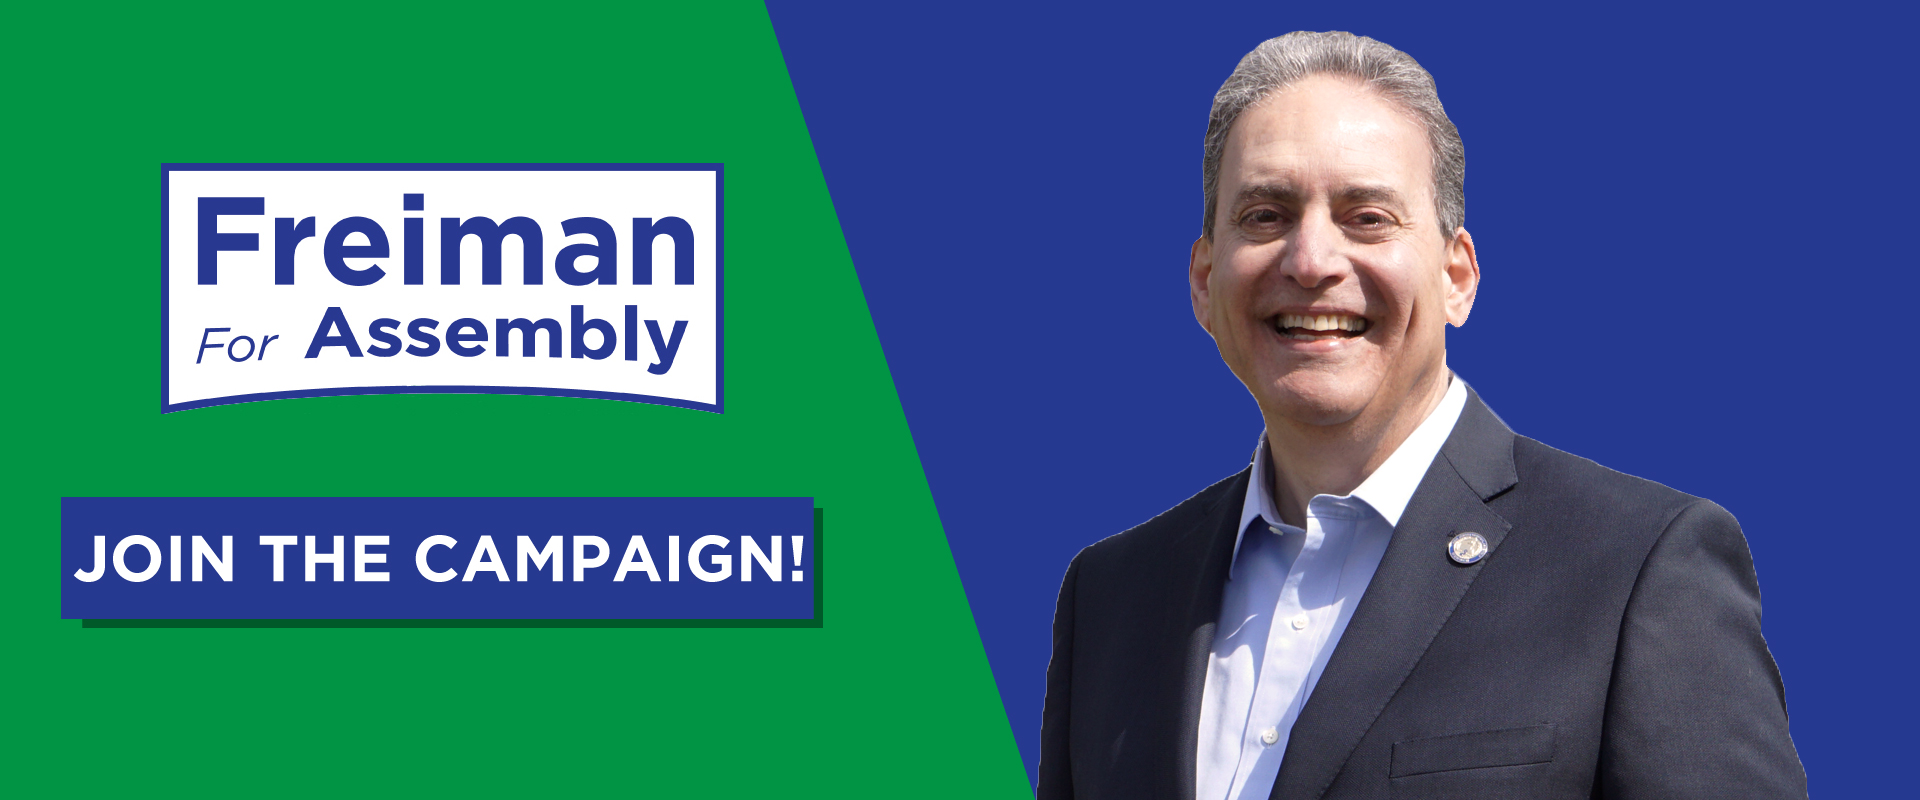 Assemblyman Roy Freiman of New Jersey's 16th Legislative District: Join the Campaign